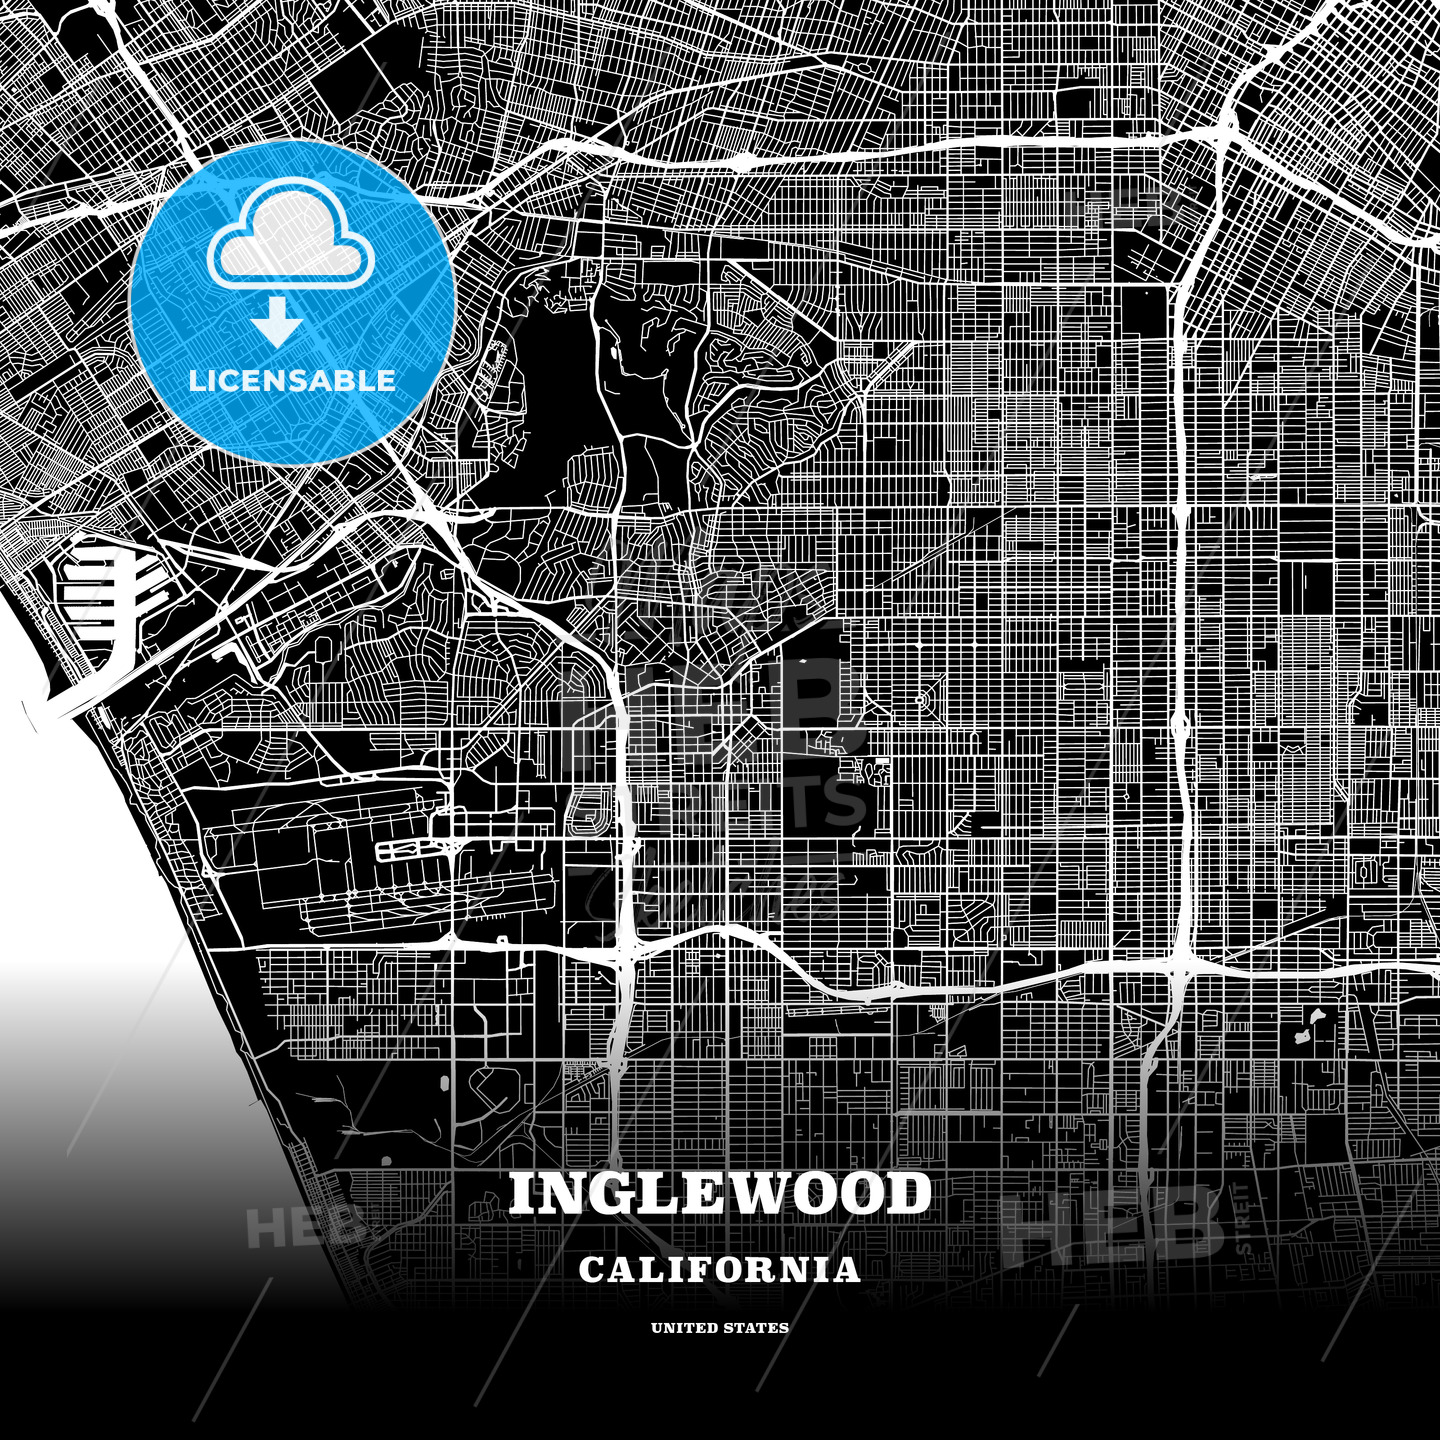 Black map poster template of Inglewood, California, USA